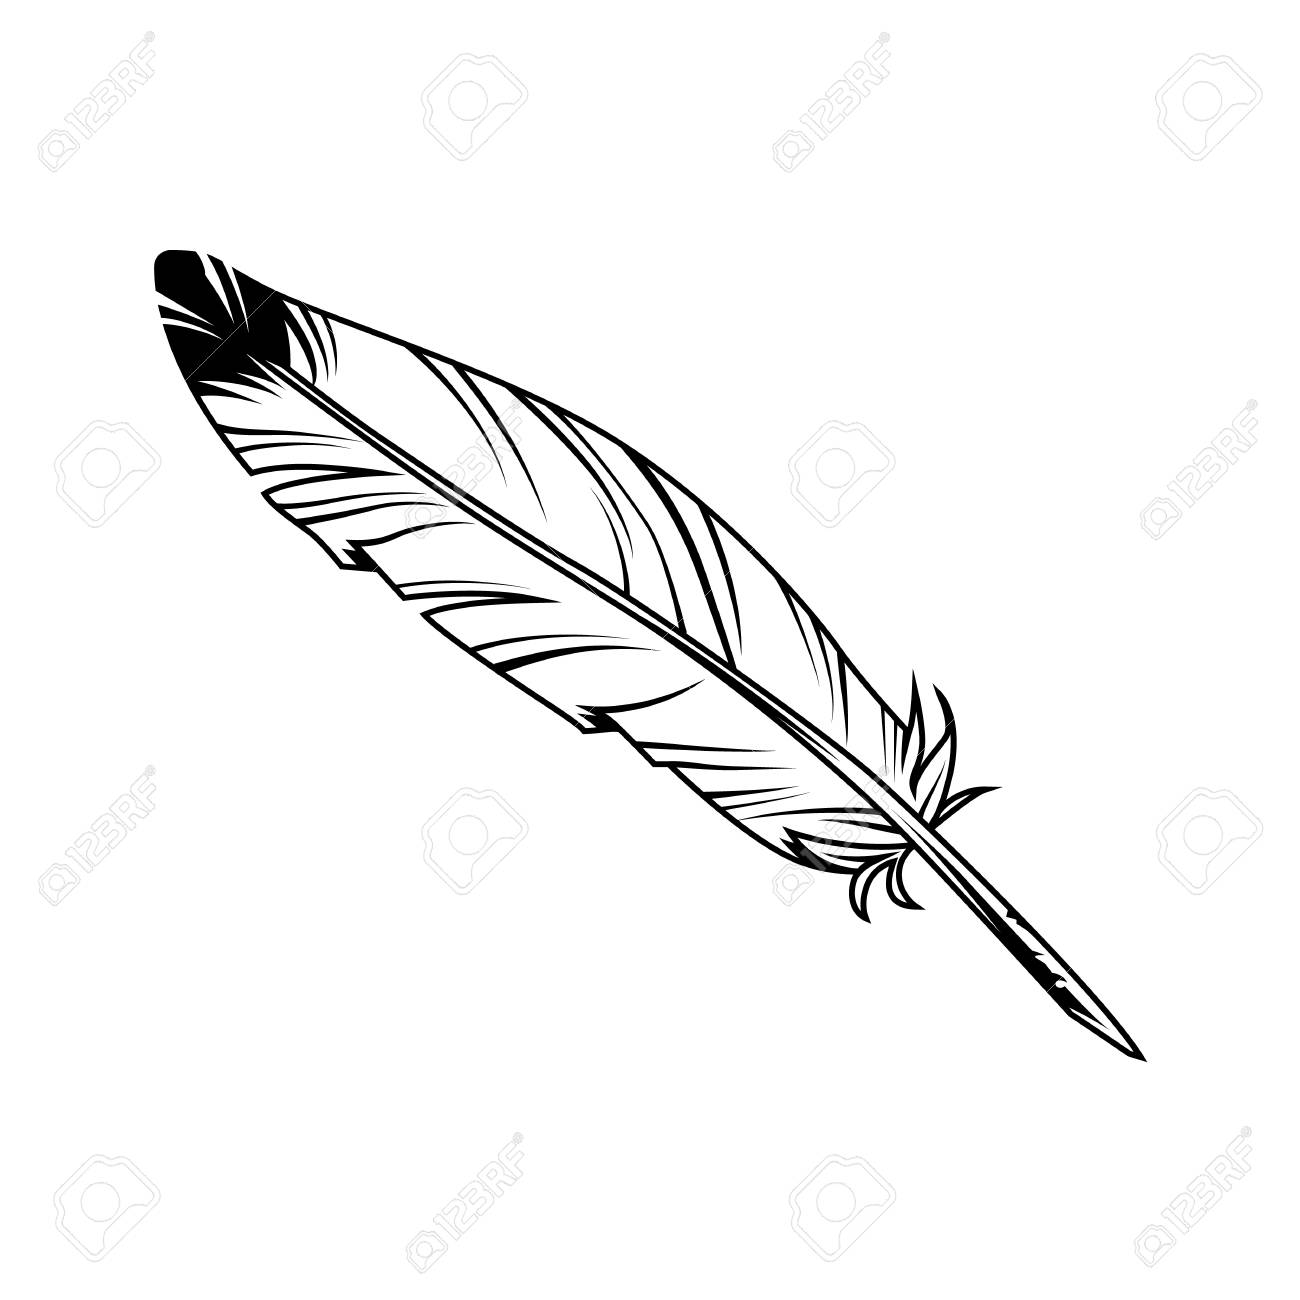 Vintage monochrome feather pen with ink on white background isolated vector illustration - 110864864